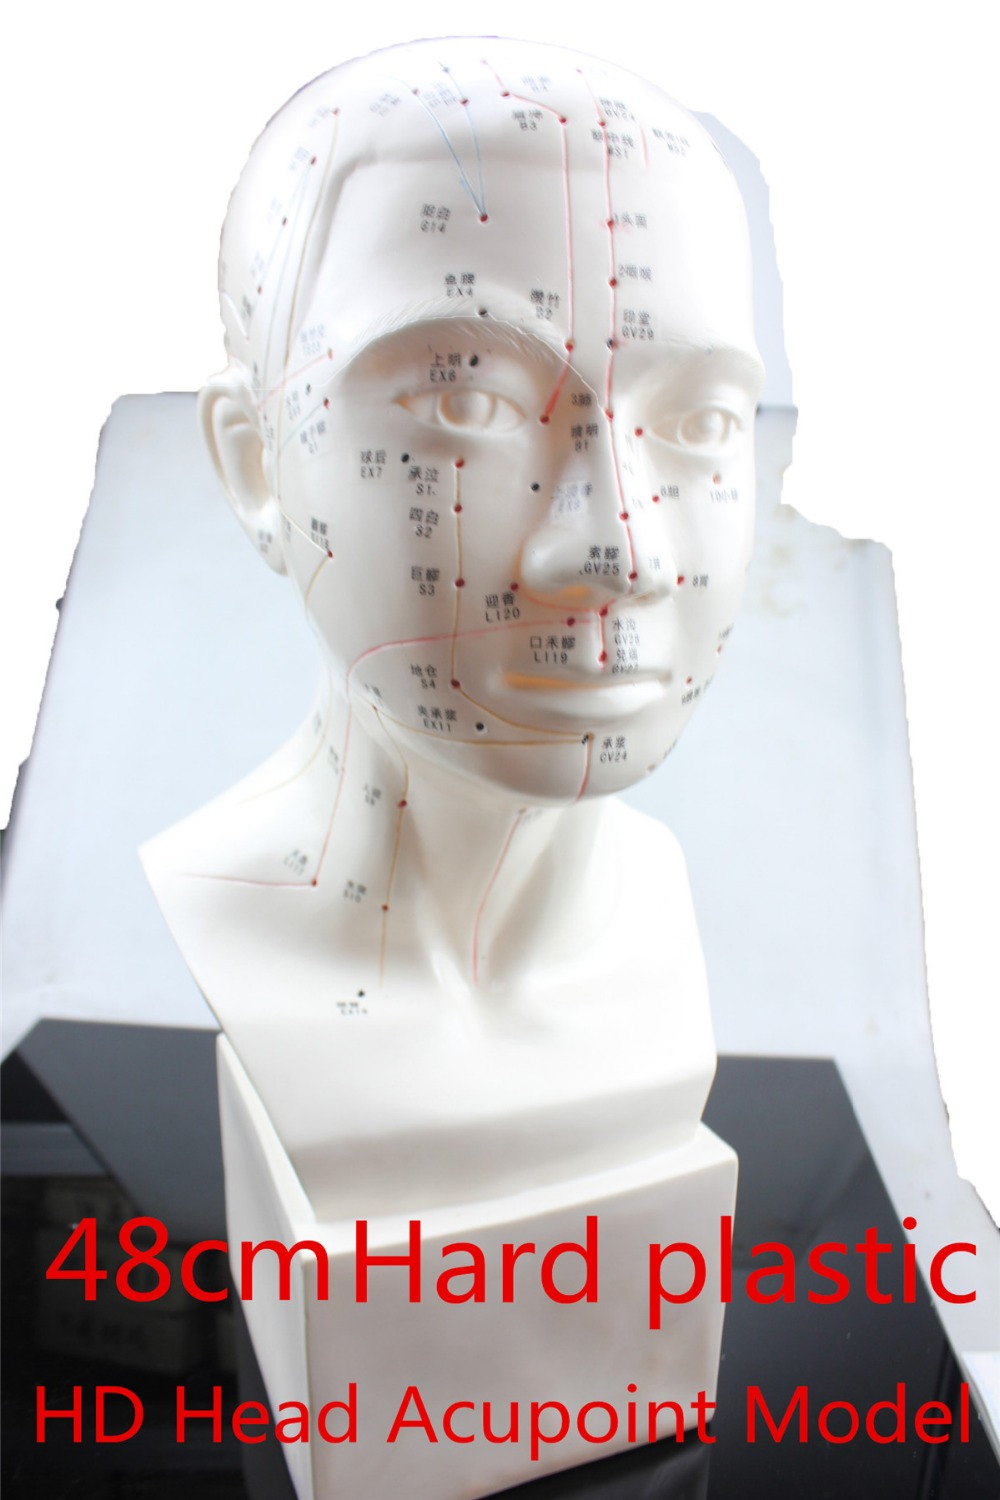 HD Head acupuncture model 48cm high definition face Facial Acupoint Acupuncture point model Head acupuncture teaching Hard model